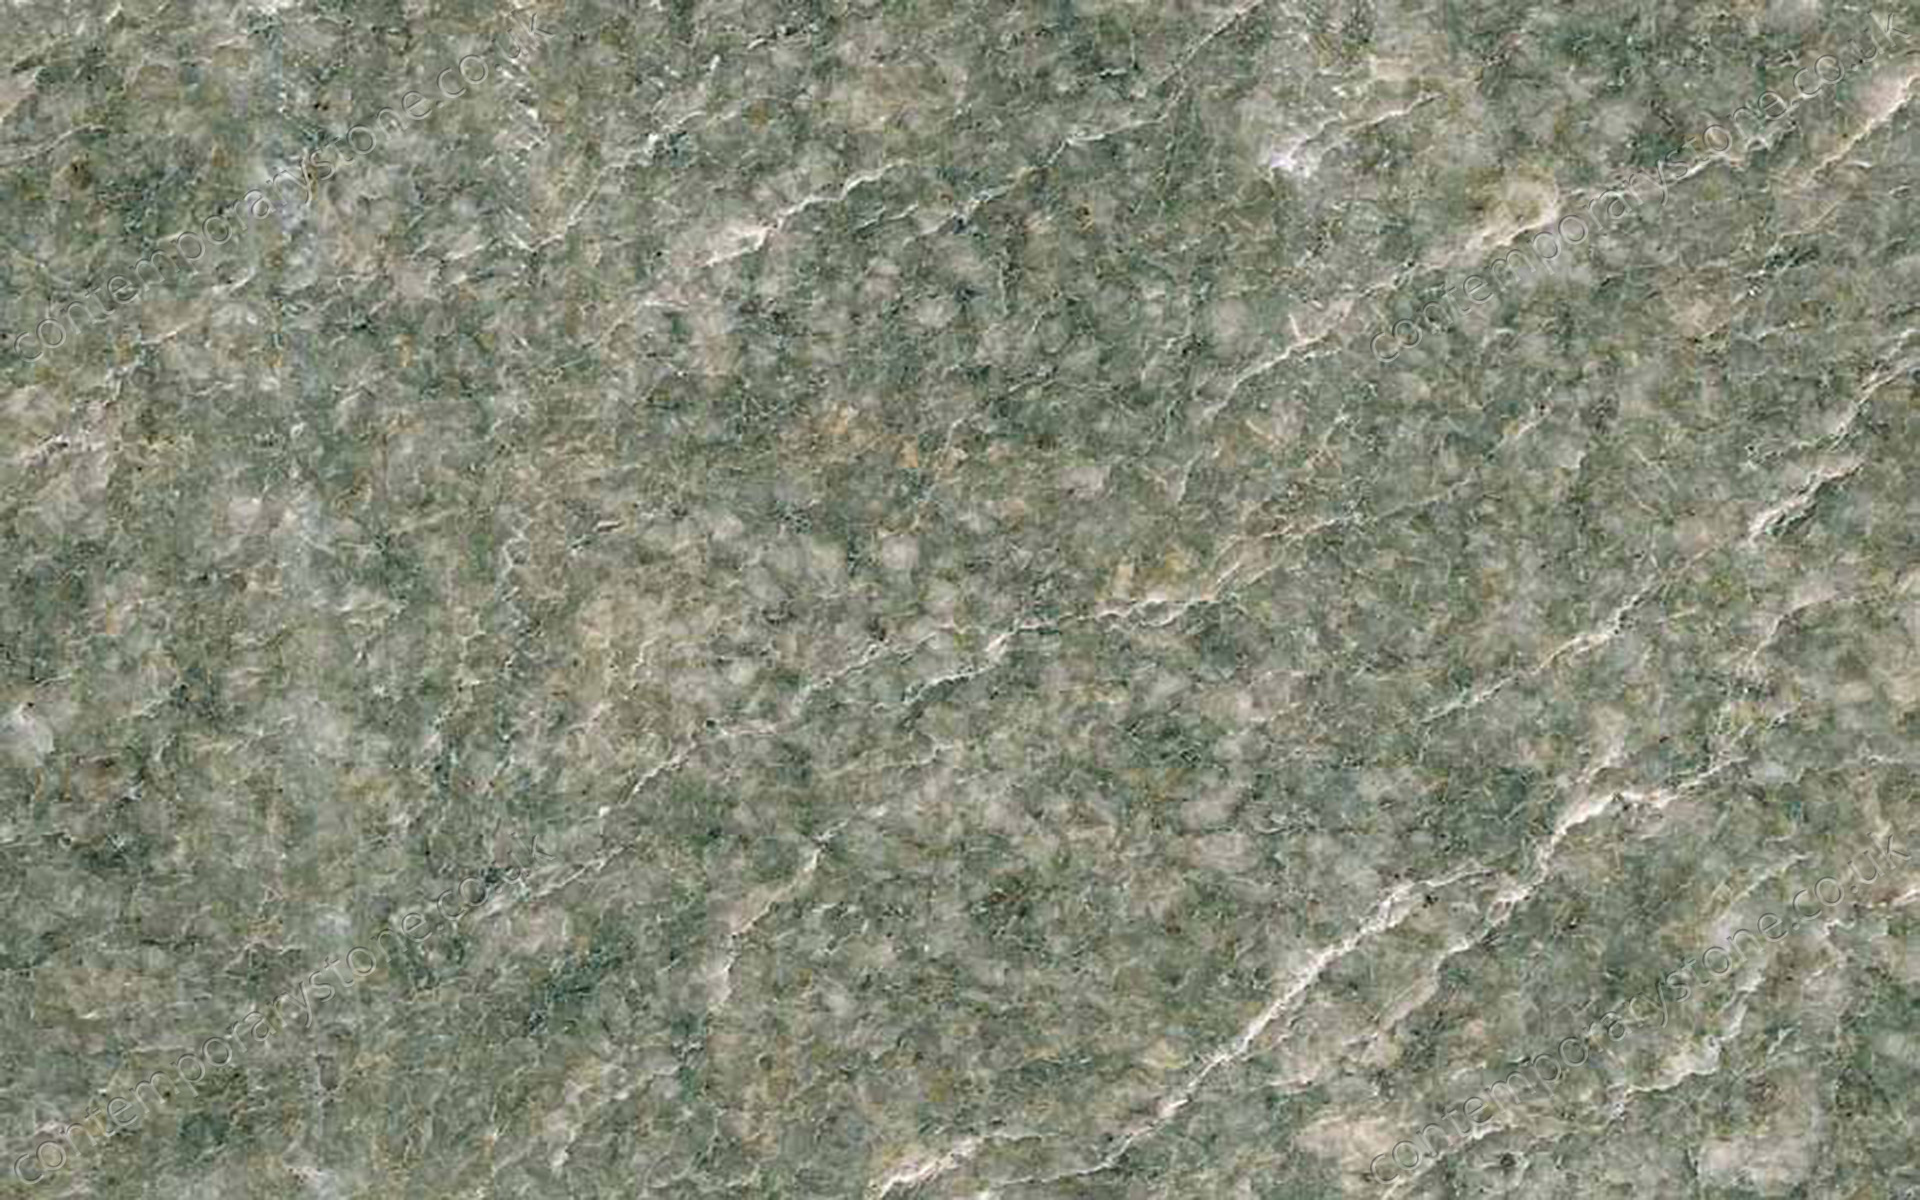 Costa Smeralda granite close-up